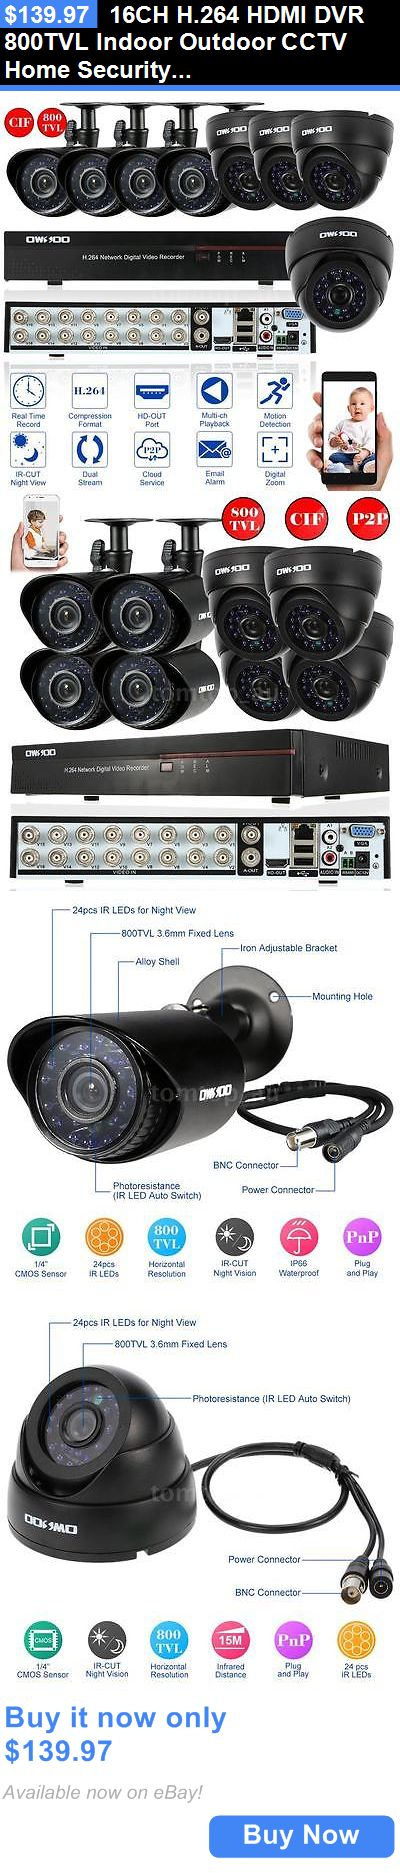 Surveillance Security Systems: 16Ch H.264 Hdmi Dvr 800Tvl Indoor Outdoor Cctv Home Security Camera System E0x9 BUY IT NOW ONLY: $139.97